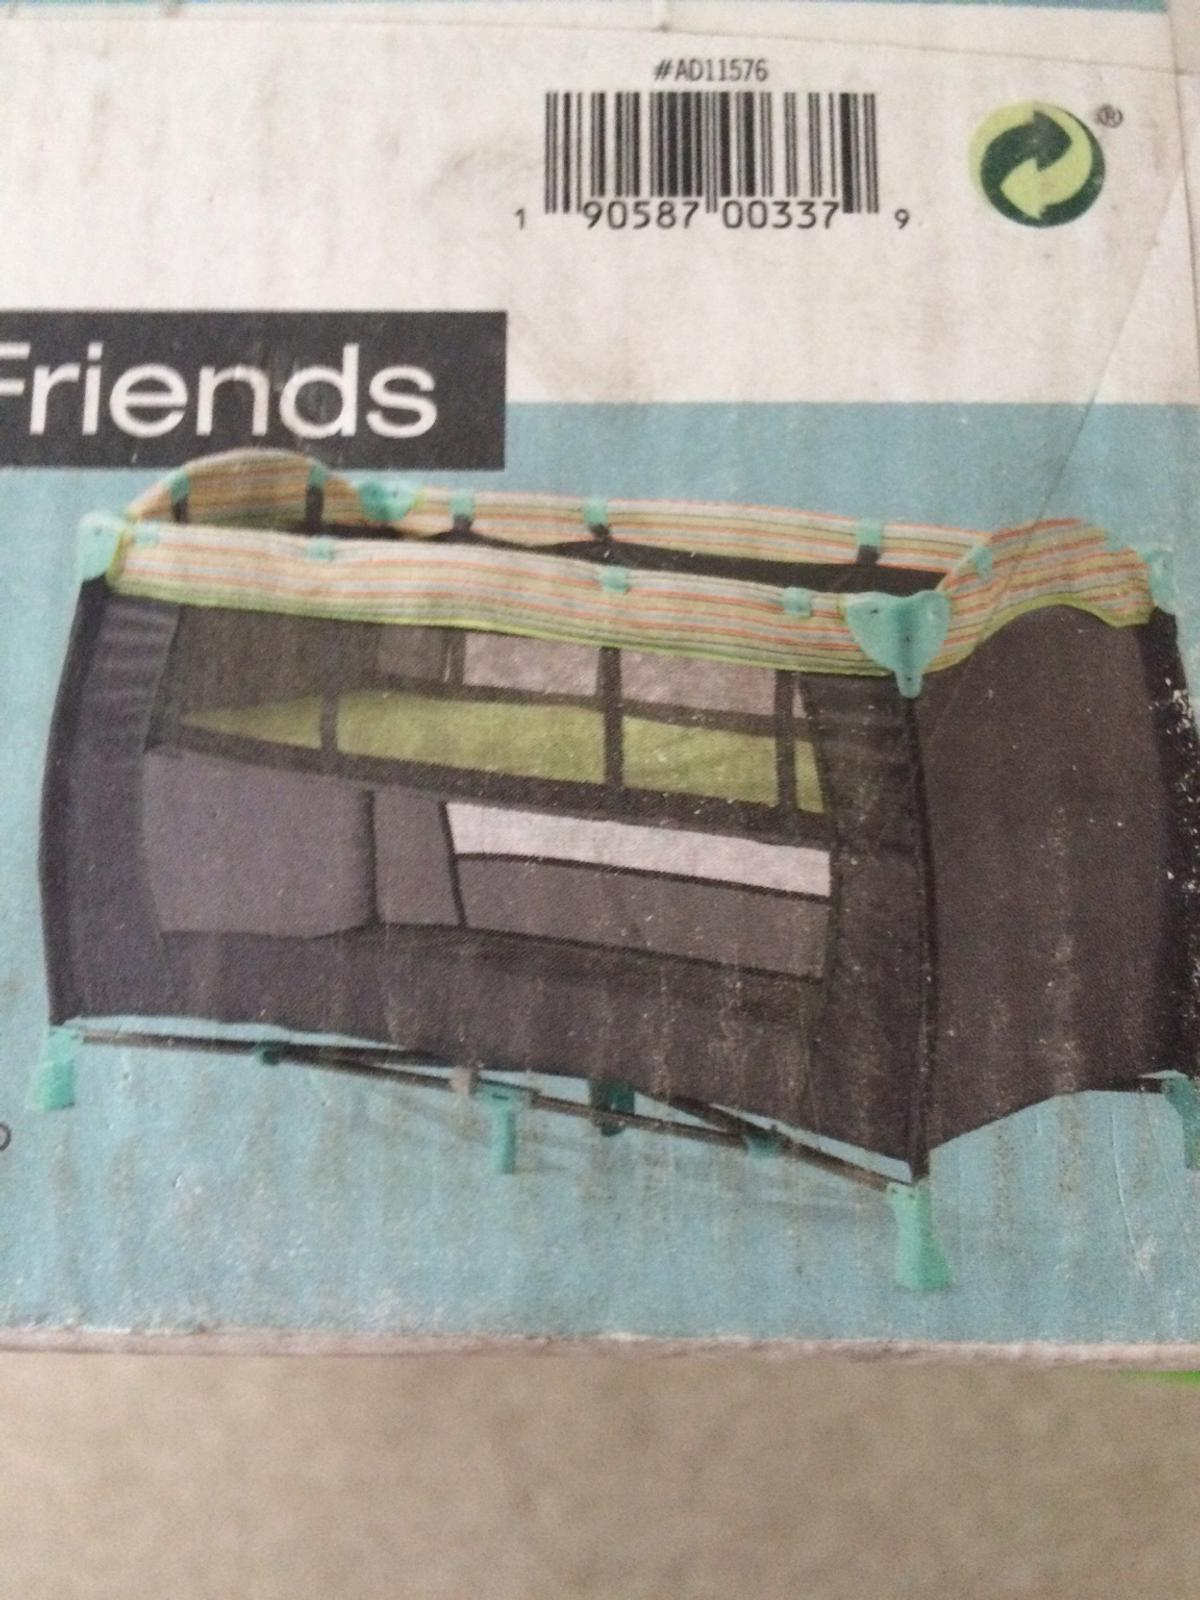 914c7b10a Zobo Woodland Friends Travel Cot in East Tilbury for £20.00 for sale ...